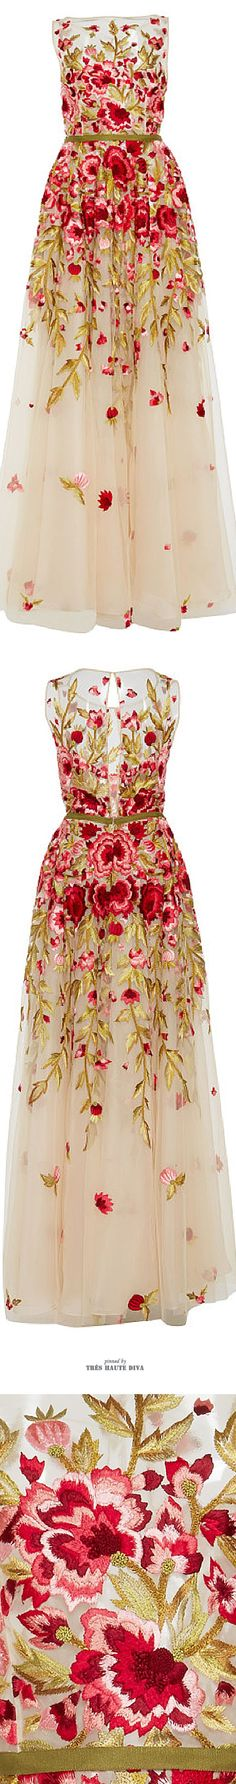 Floral Embroidered Sleeveless Gown: